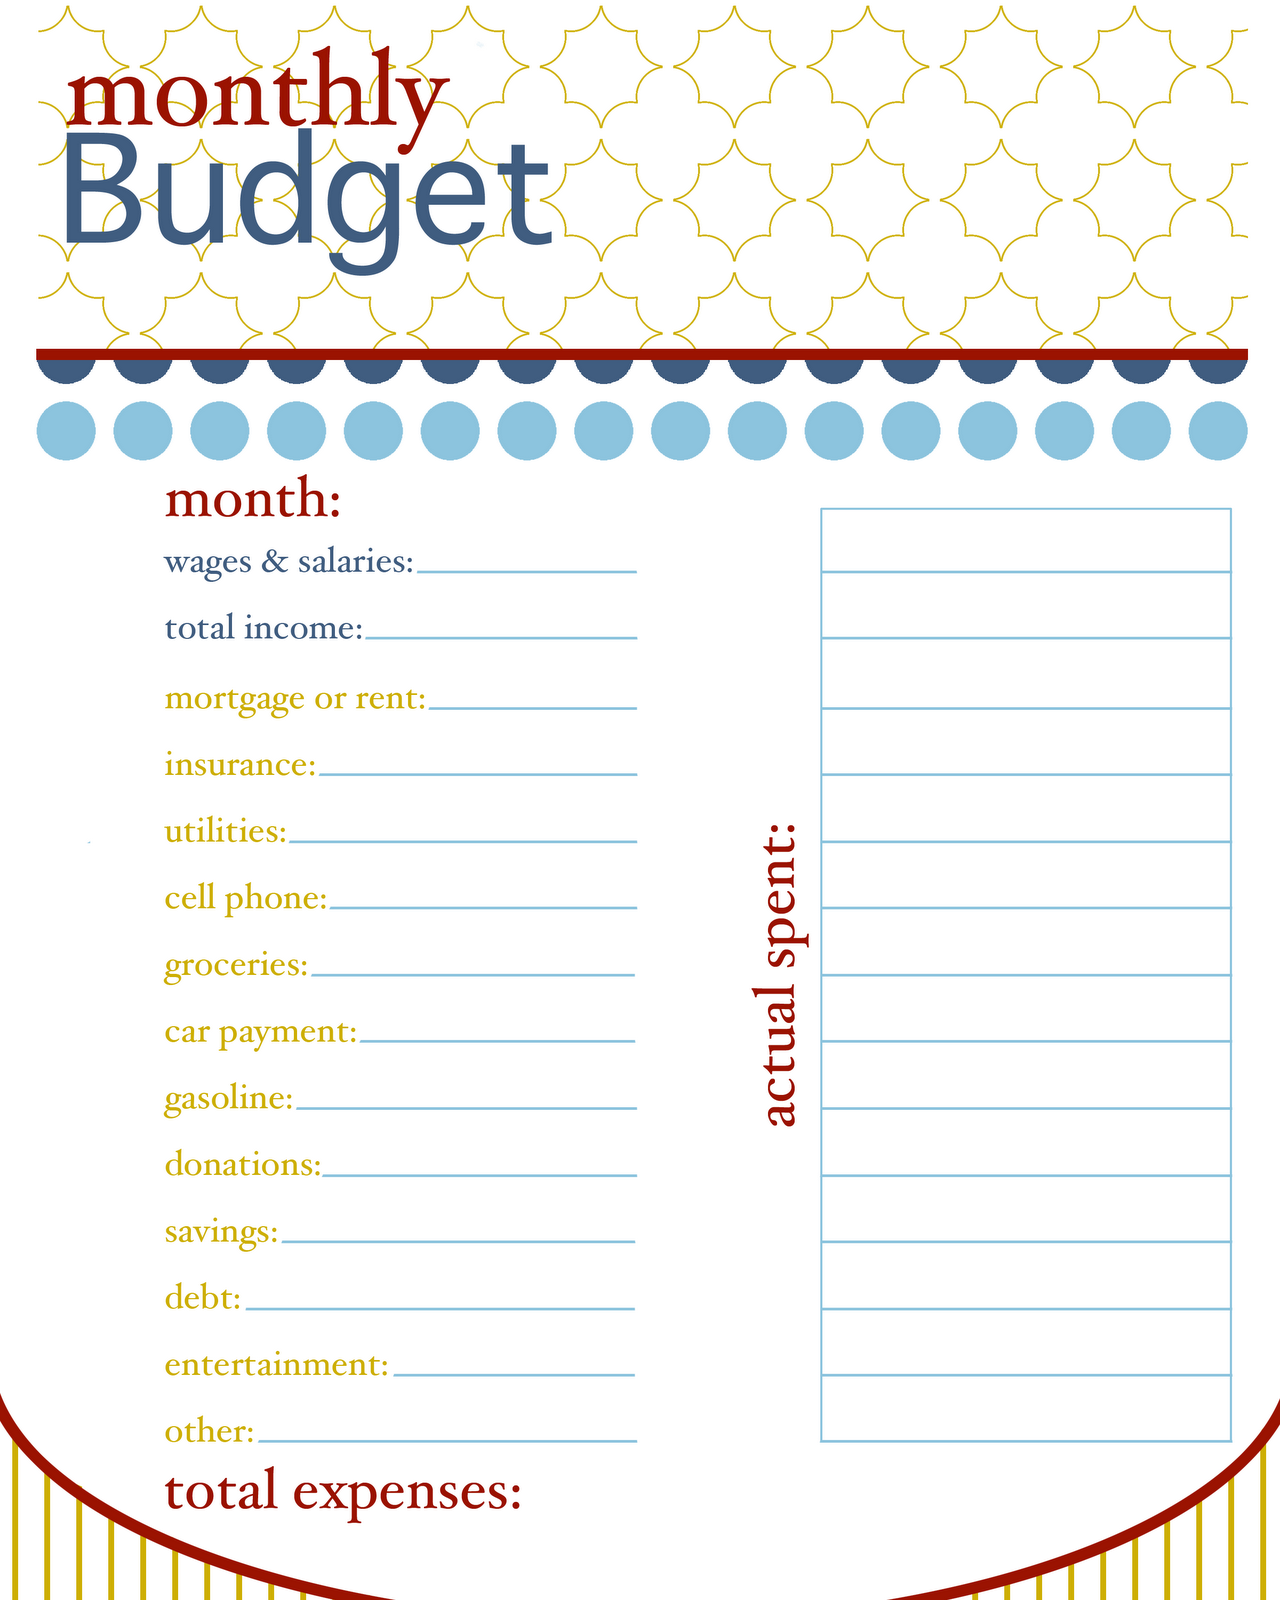 worksheet Monthly Budget Worksheet Printable printable monthly budget worksheet abitlikethis month worksheets planner free printables